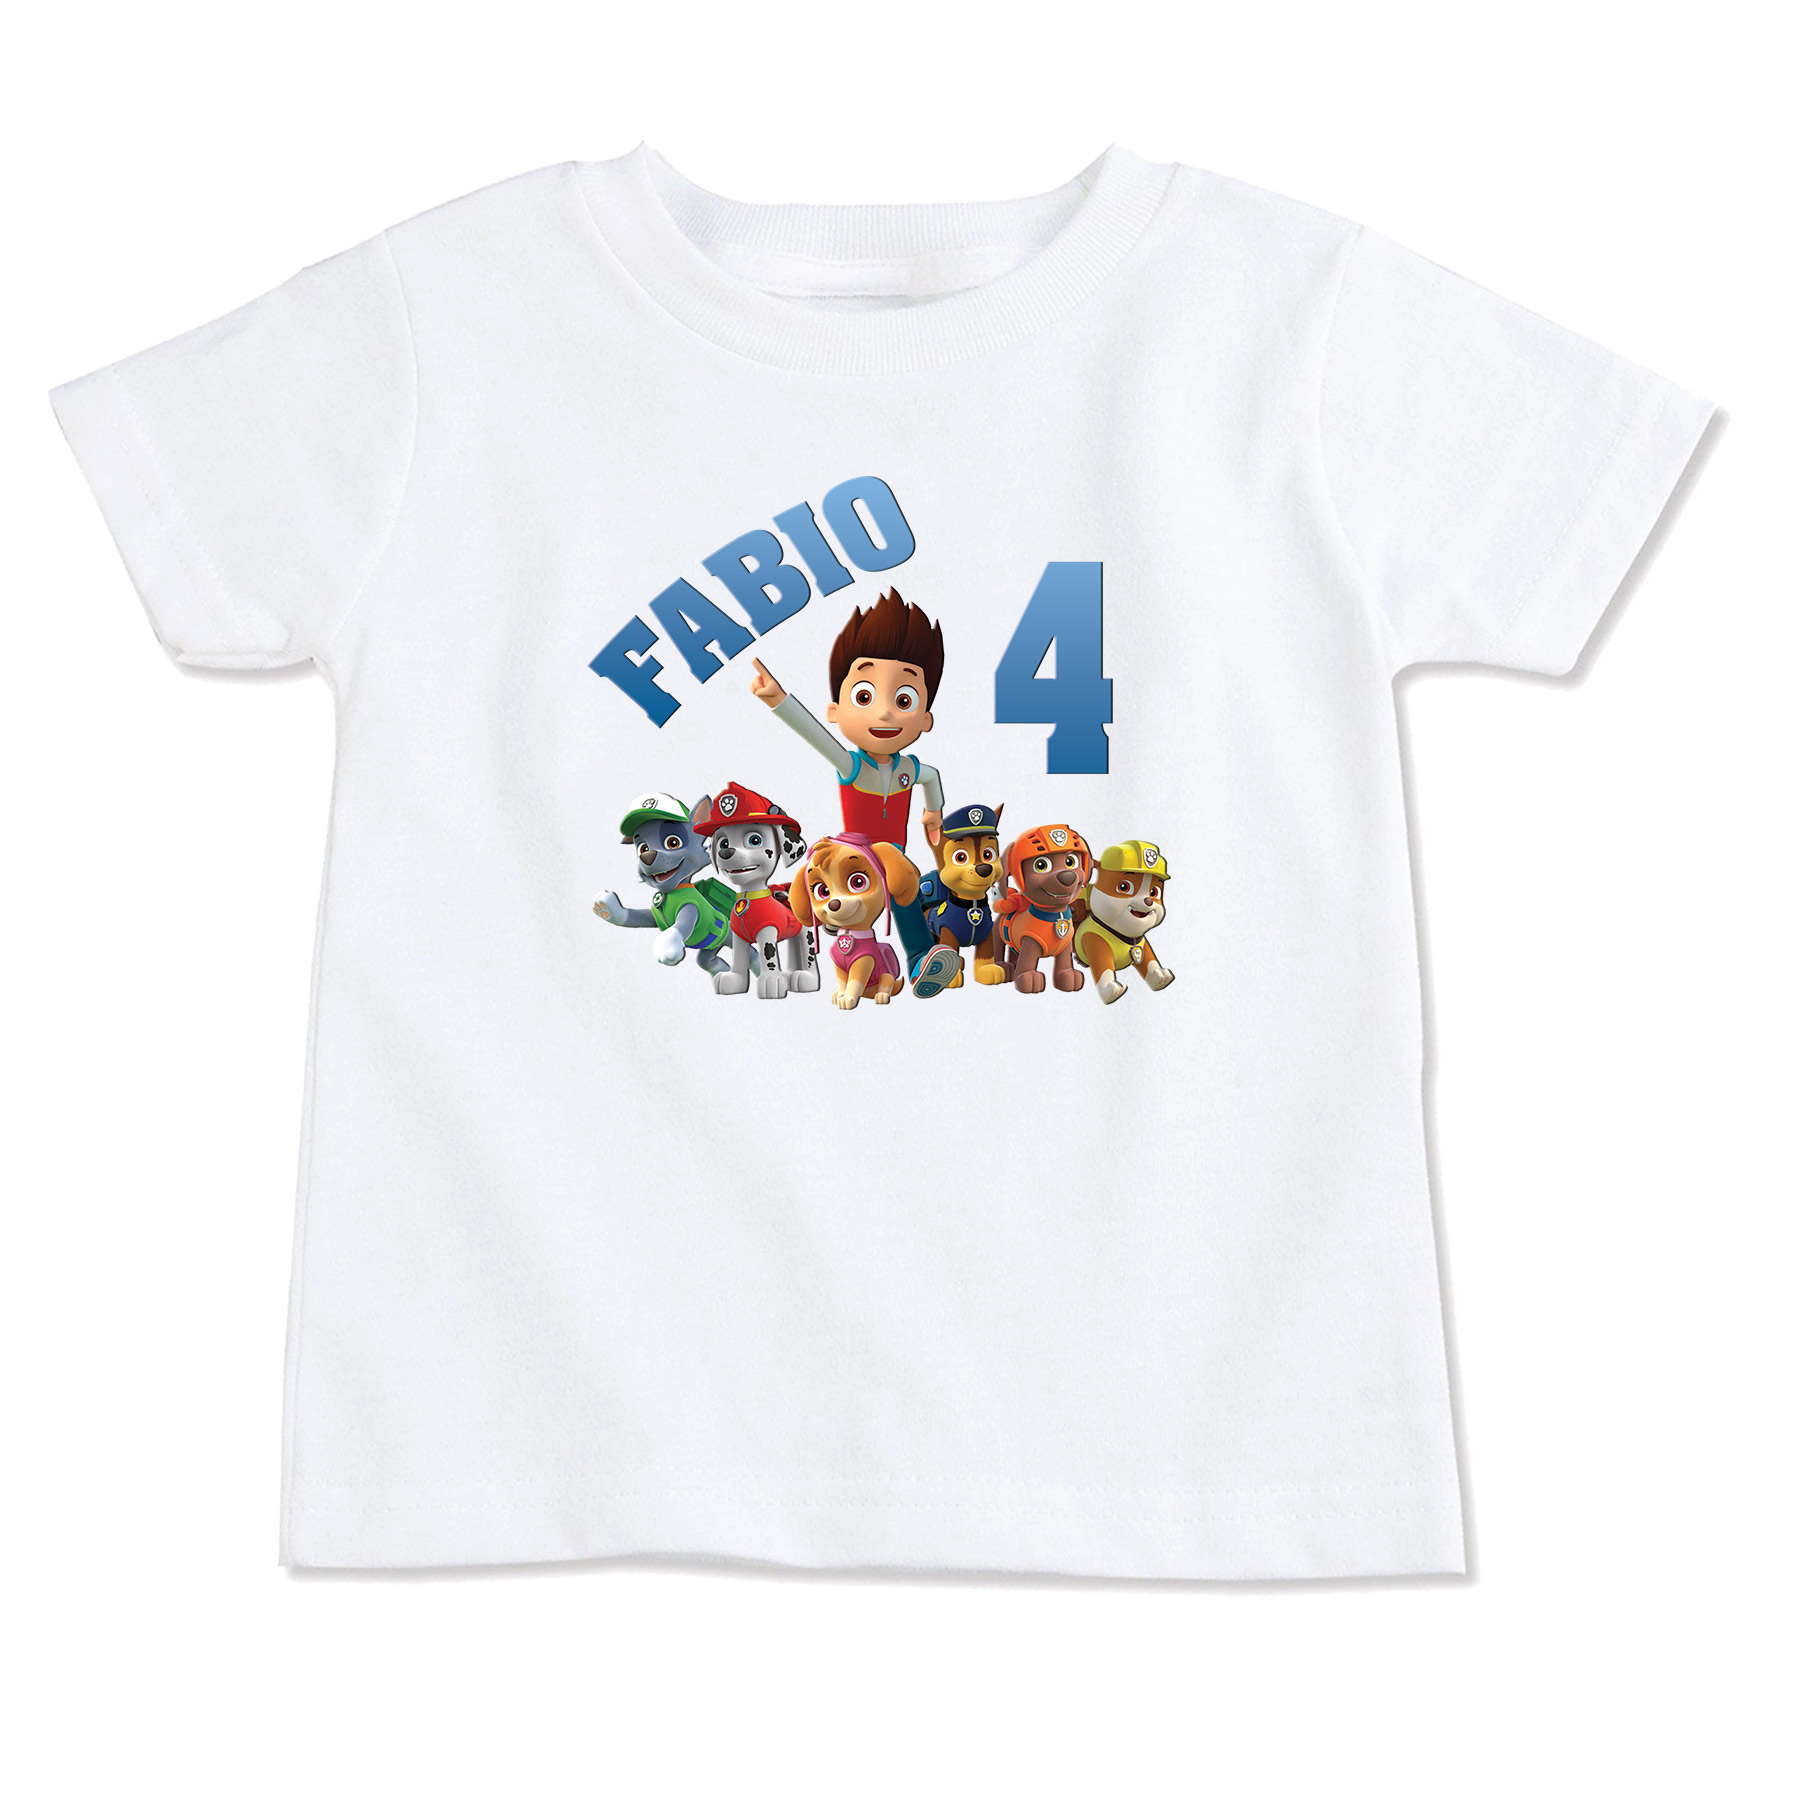 Paw Patrol Ts Mock Up Original